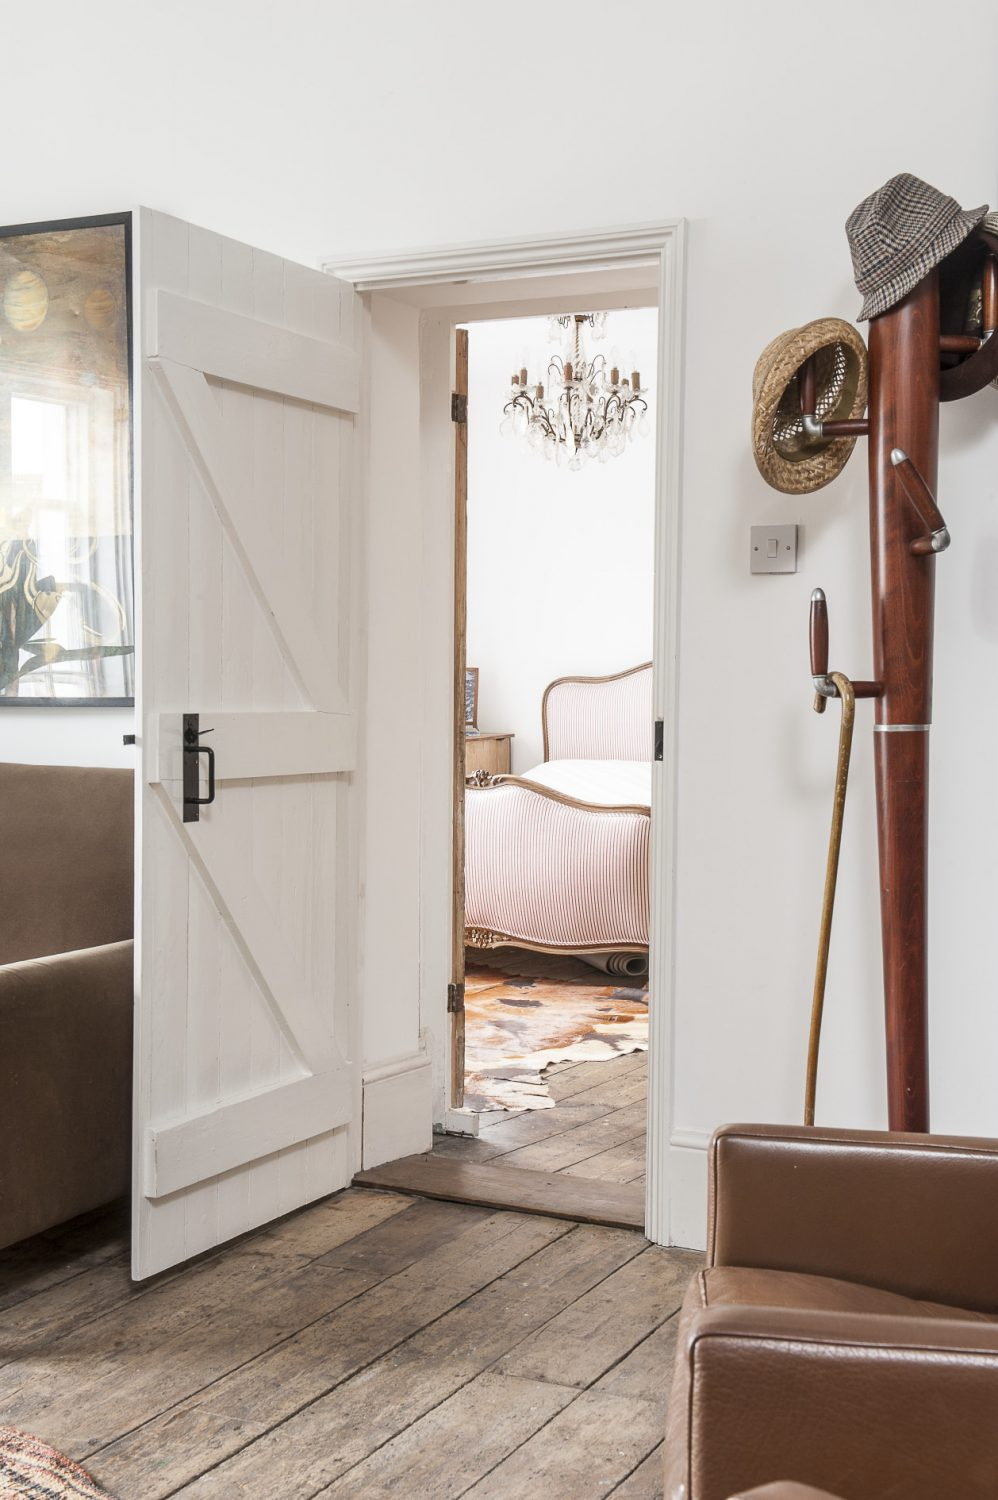 A door from the living room leads into the master bedroom. Rob has seamlessly combined an eclectic mix of contemporary and antique in each room